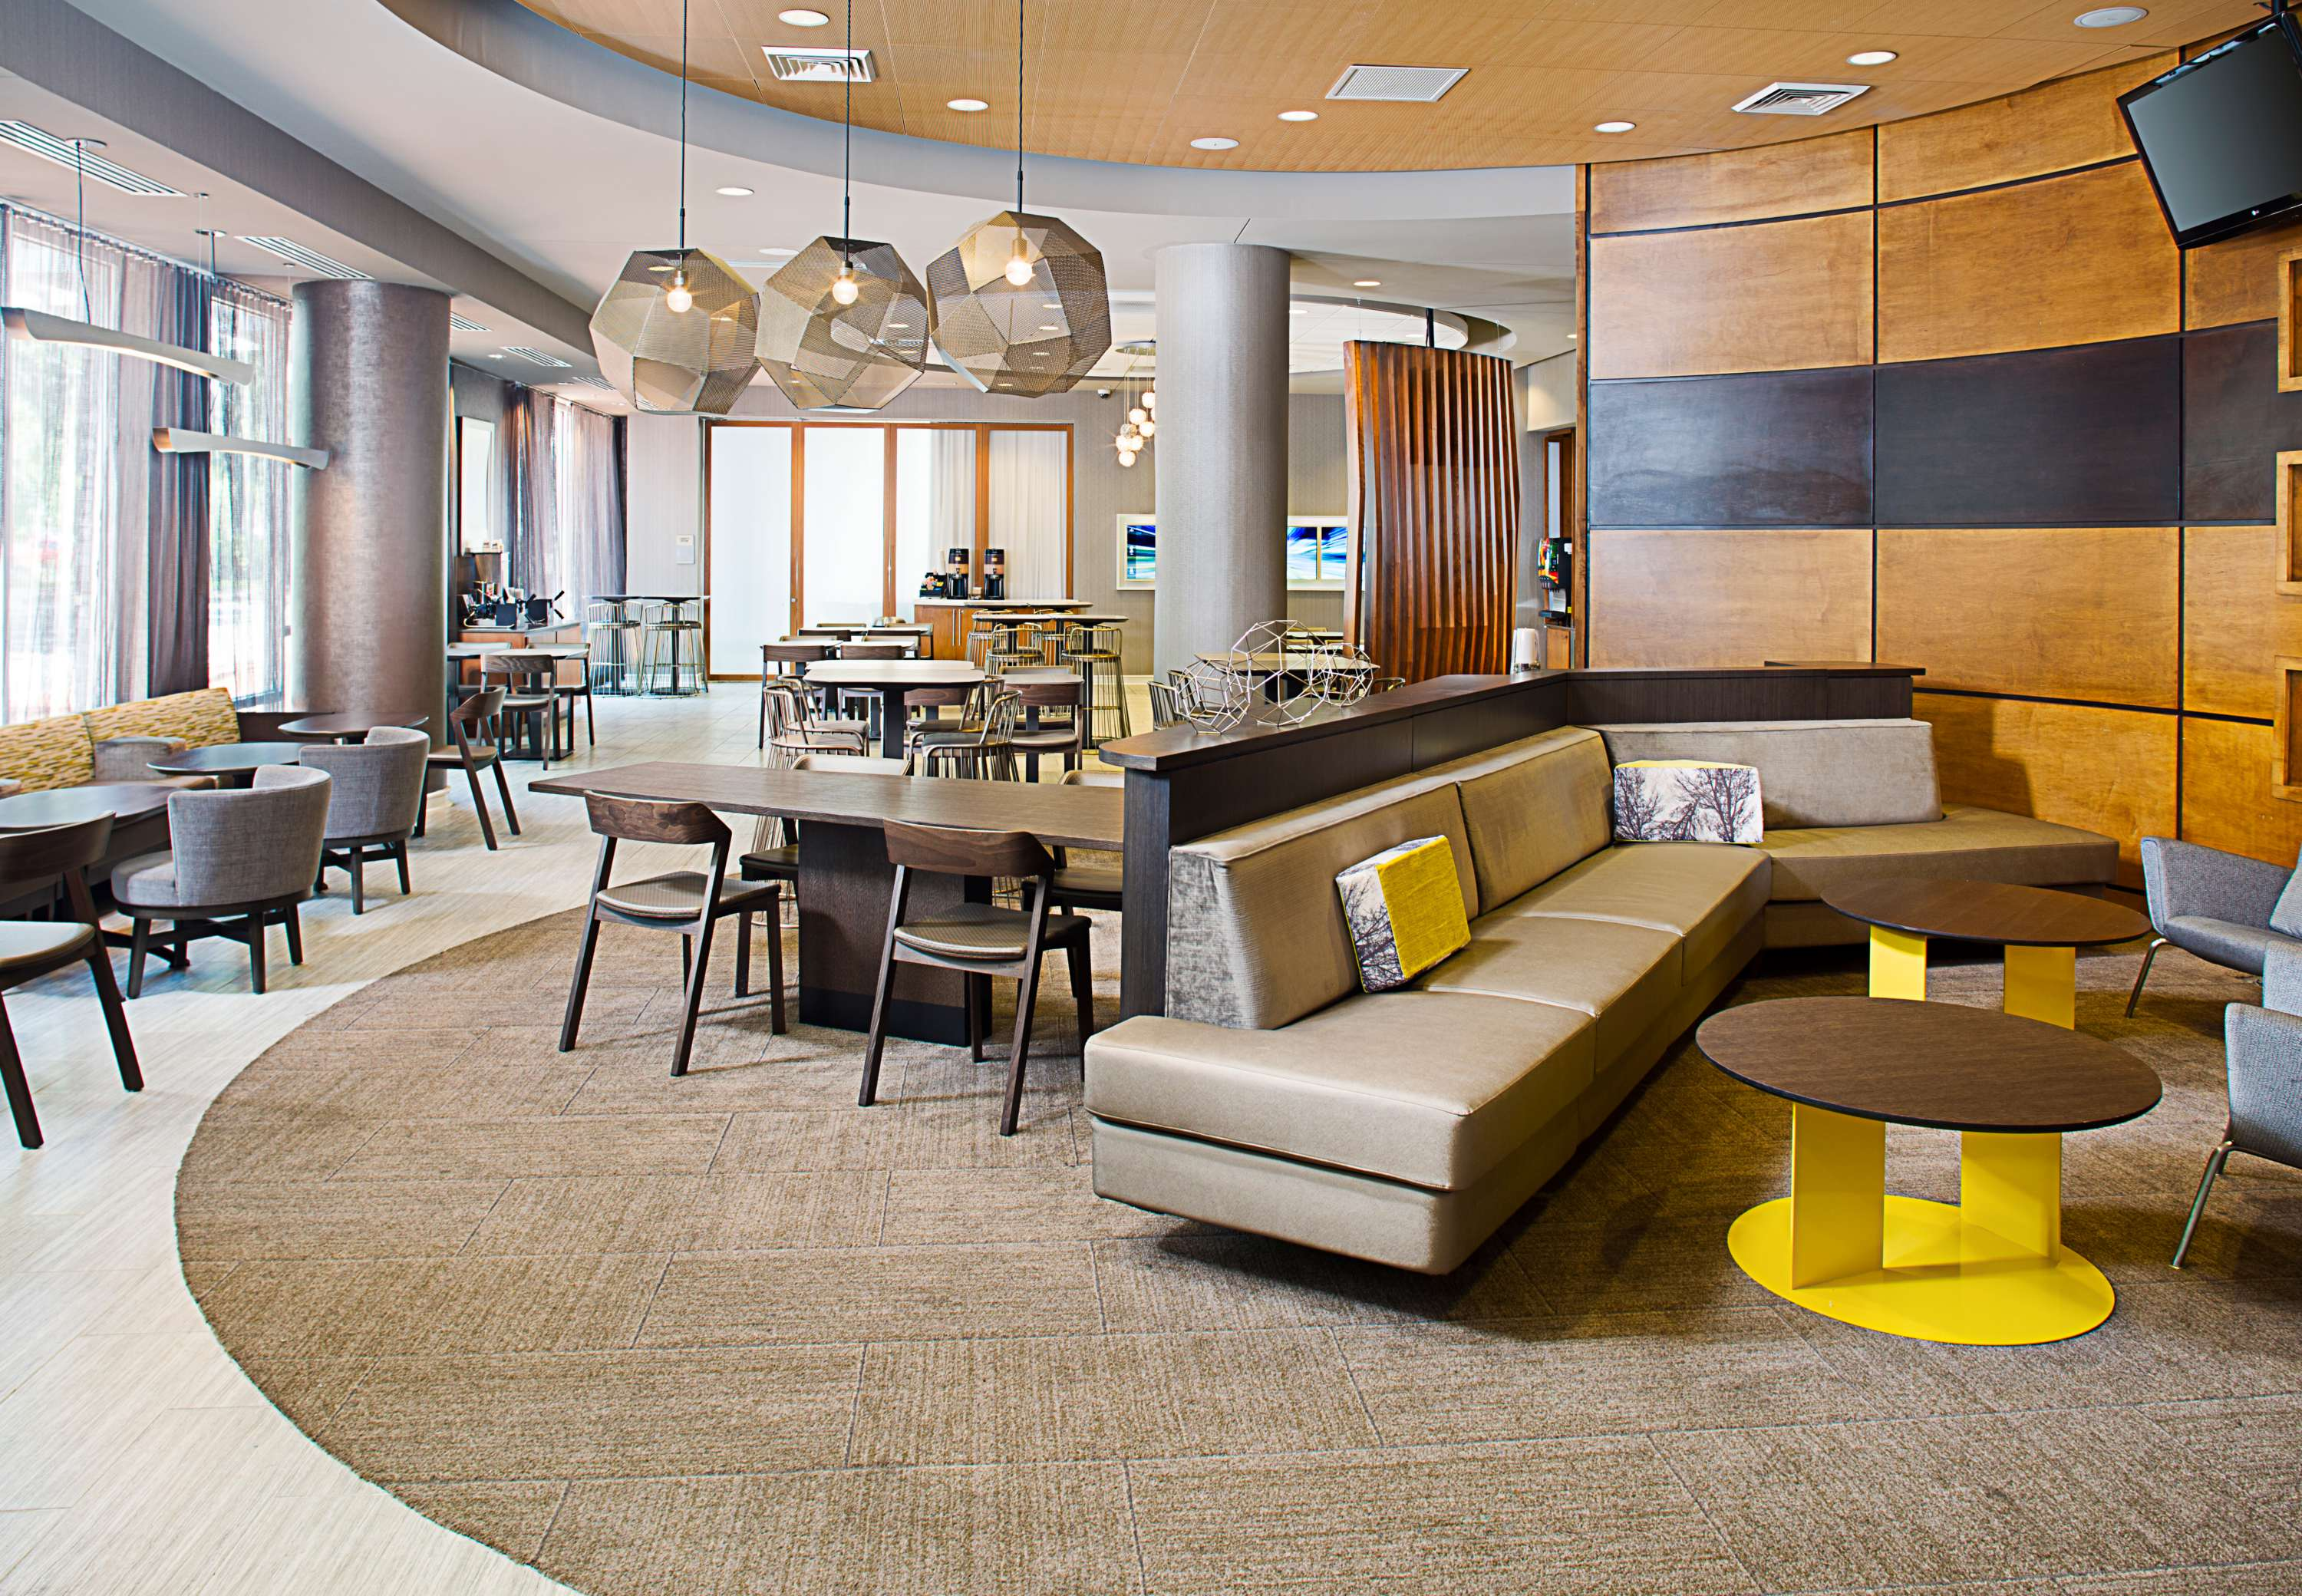 SpringHill Suites by Marriott Savannah Downtown/Historic District image 3